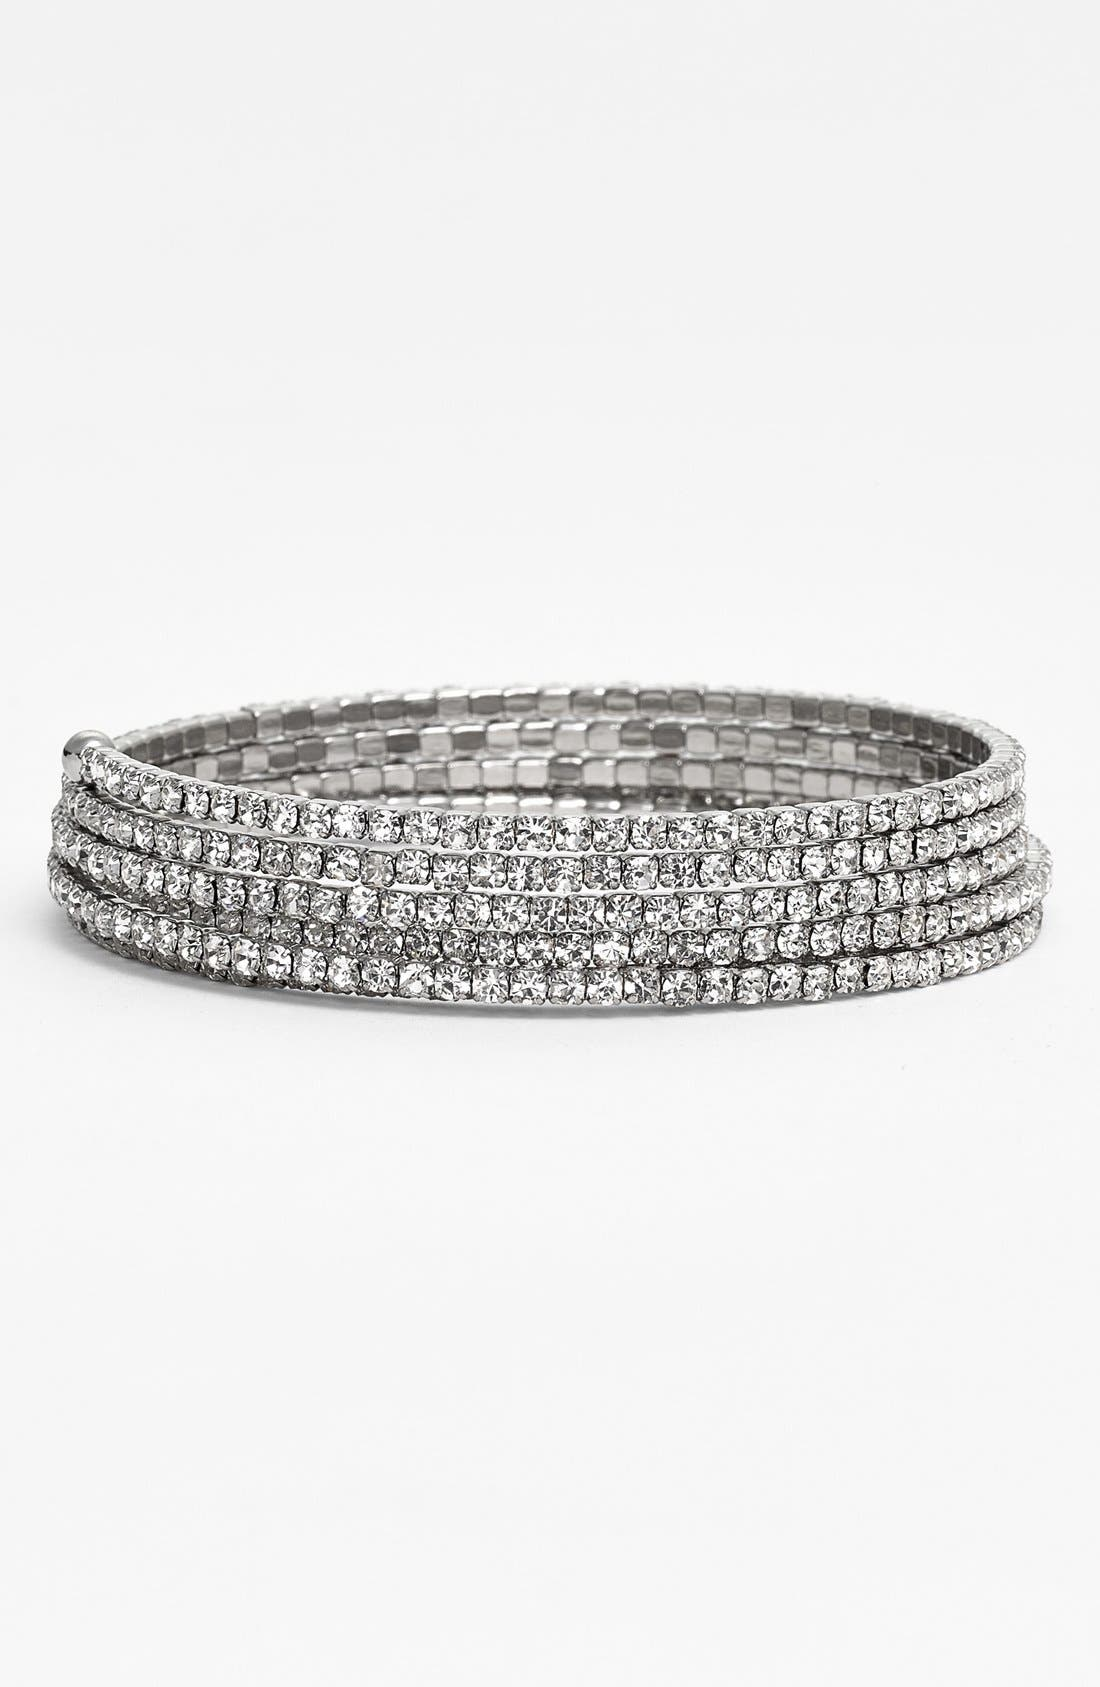 Alternate Image 1 Selected - Nordstrom 'Occasion' Crystal Coil Bracelet